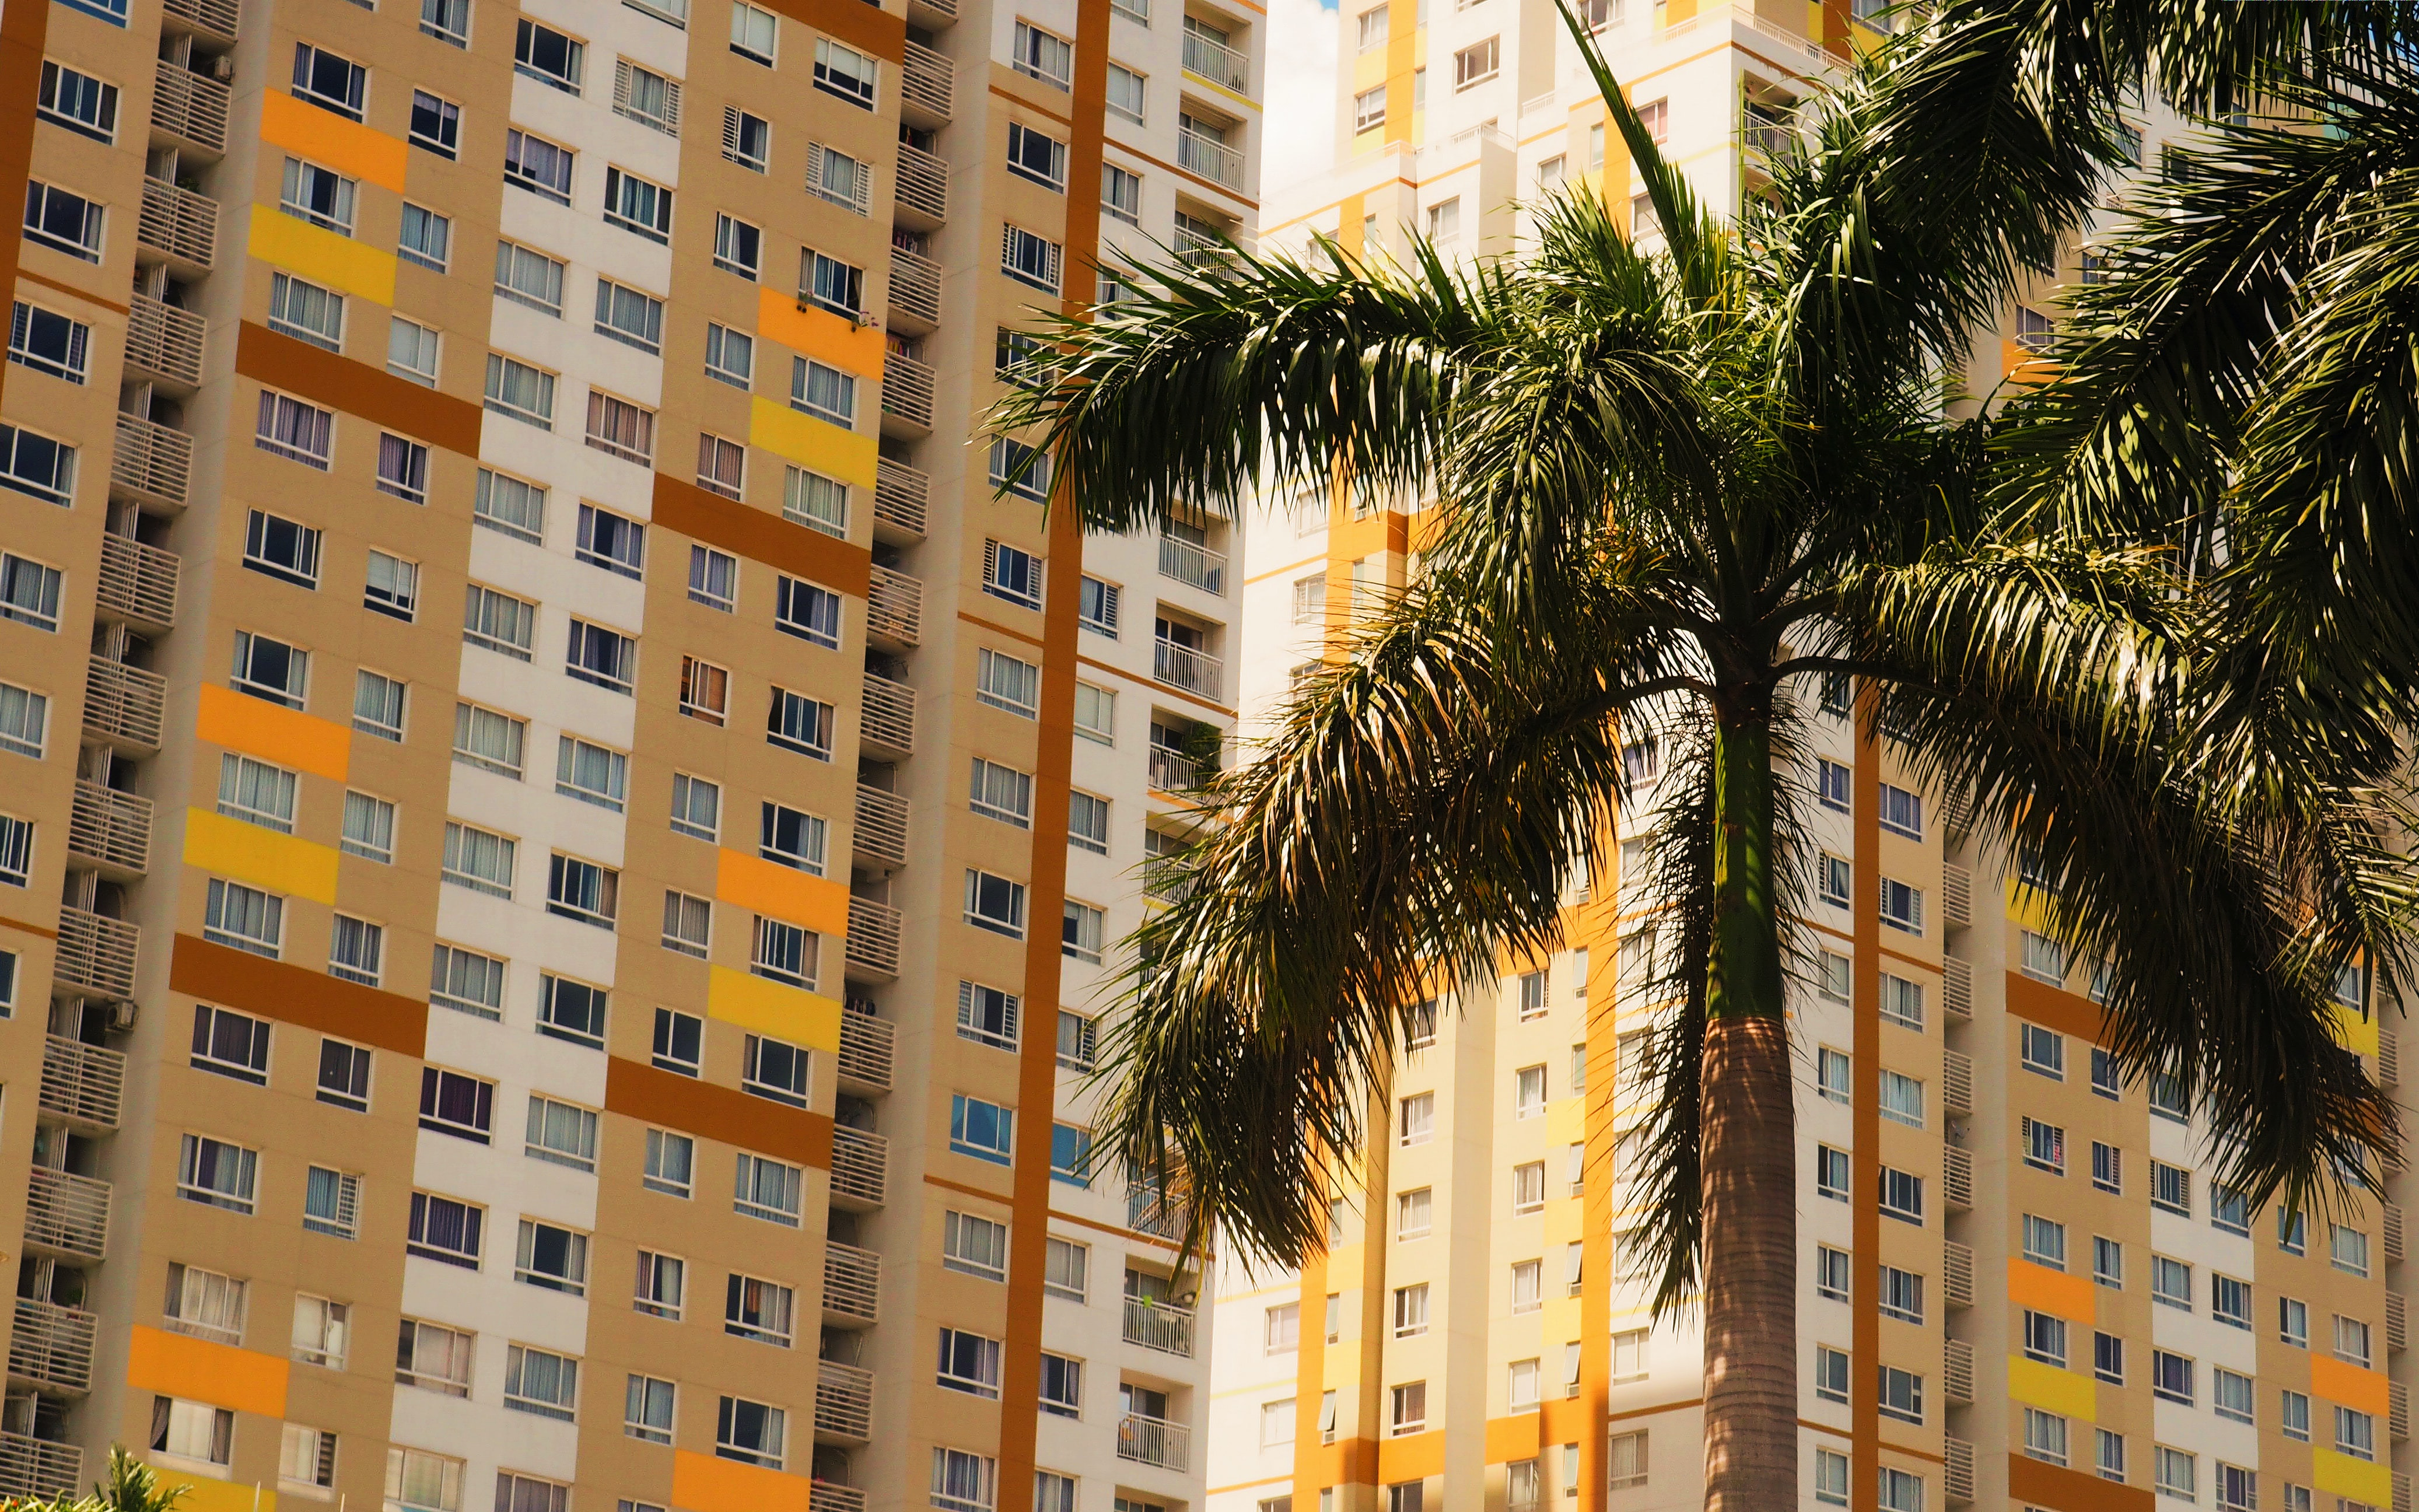 coconut tree near yellow and white buildings